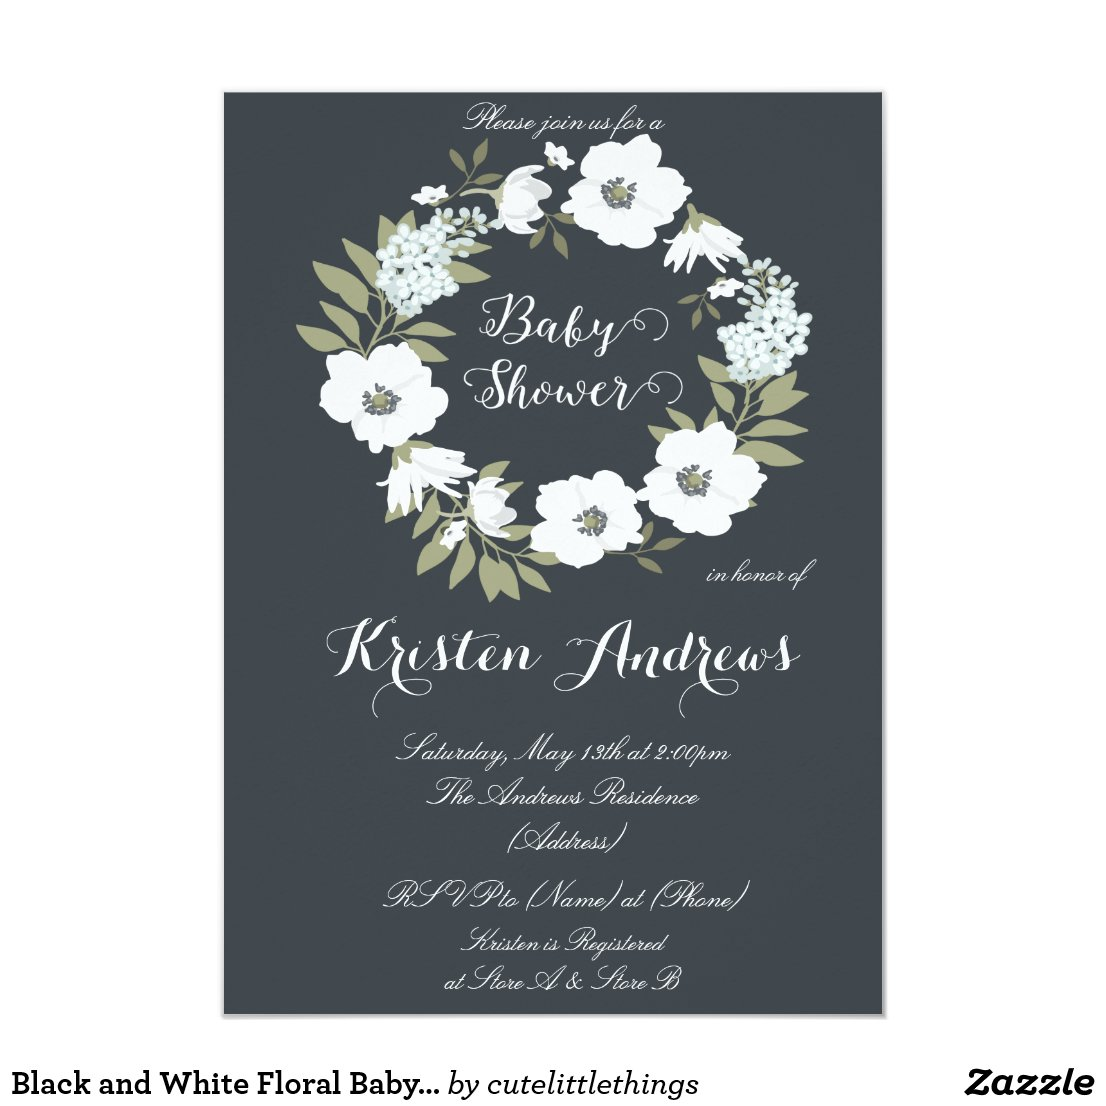 Black and White Floral Baby Shower Invitation